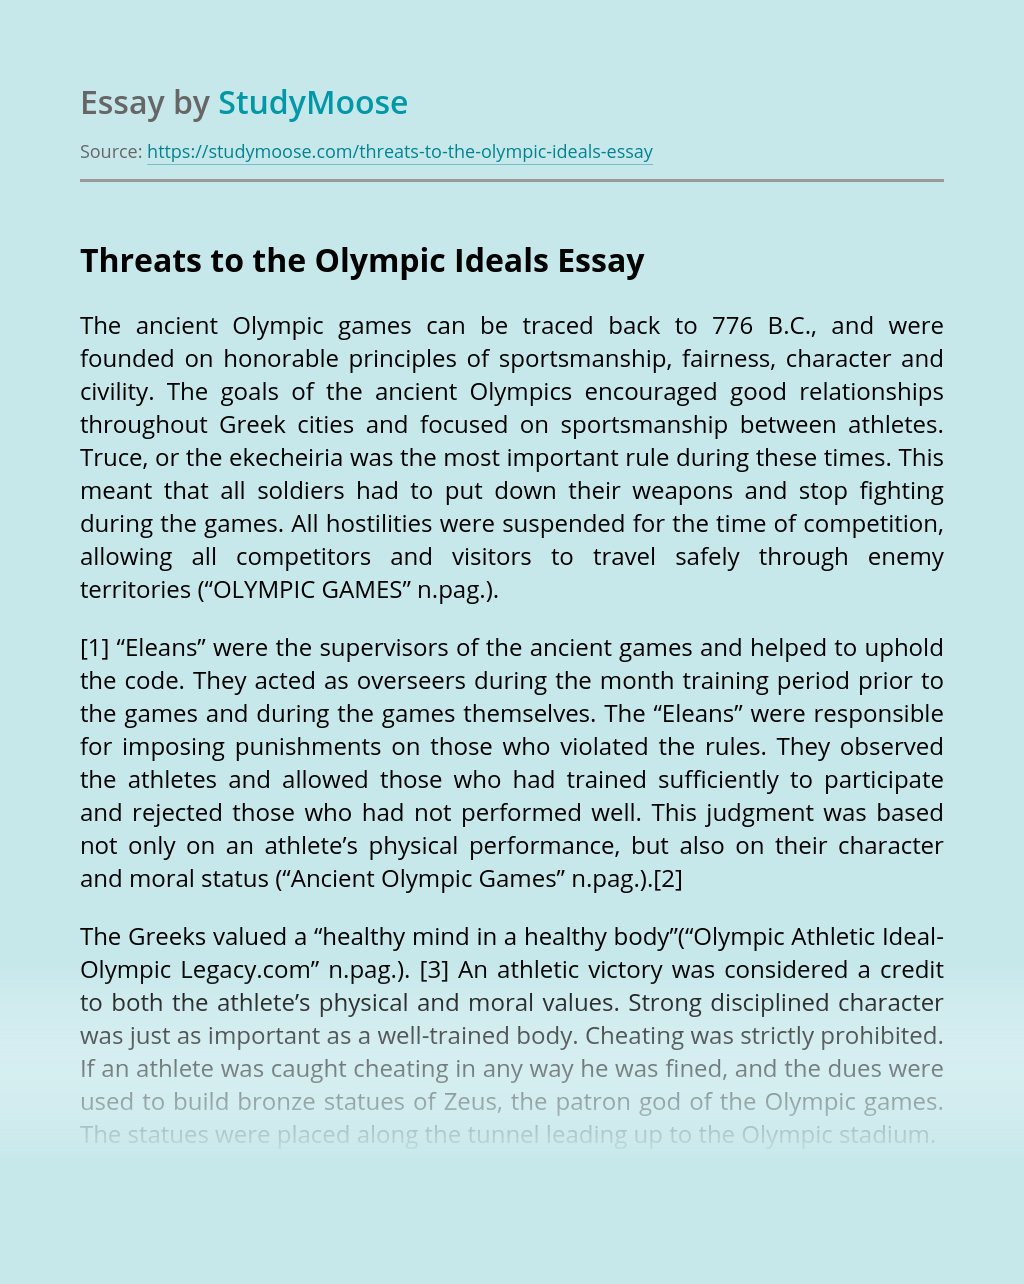 Threats to the Olympic Ideals